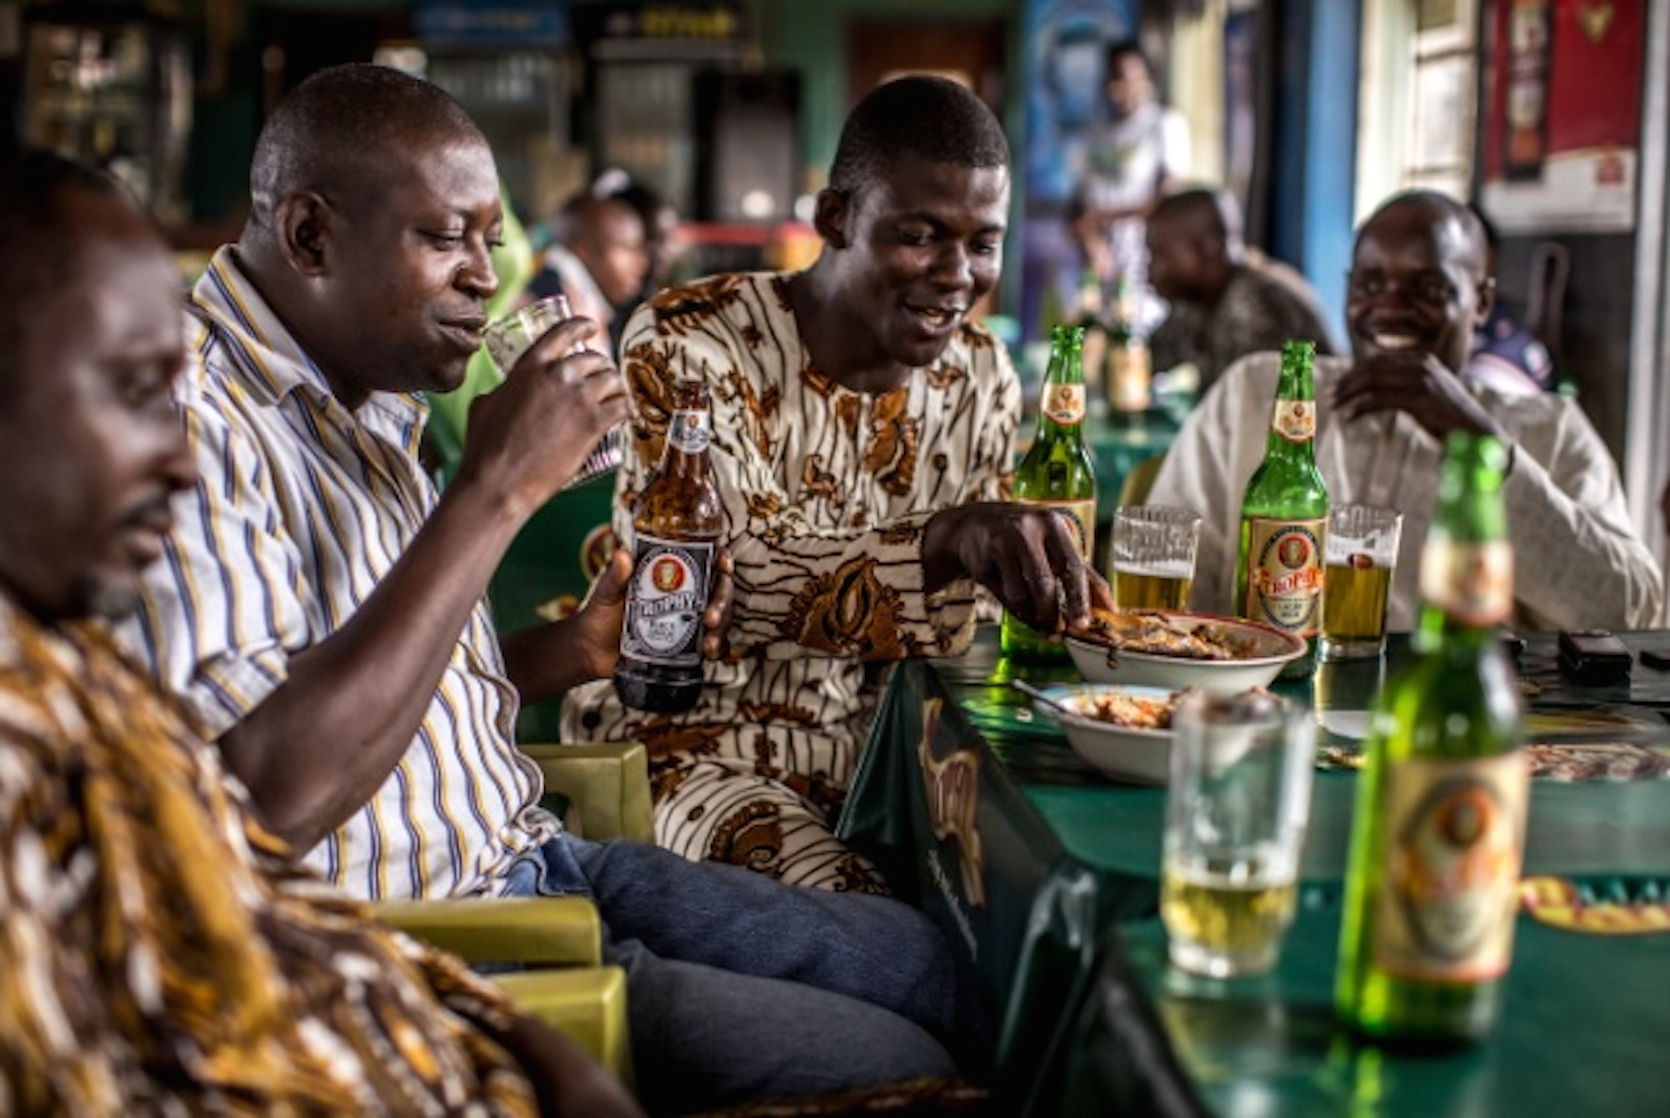 Africa is the world's fastest-growing beer market, with research group Plato Logic forecasting volume growth of 4.5 percent this year compared with 1.4 percent globally. Image courtesy: Springleap